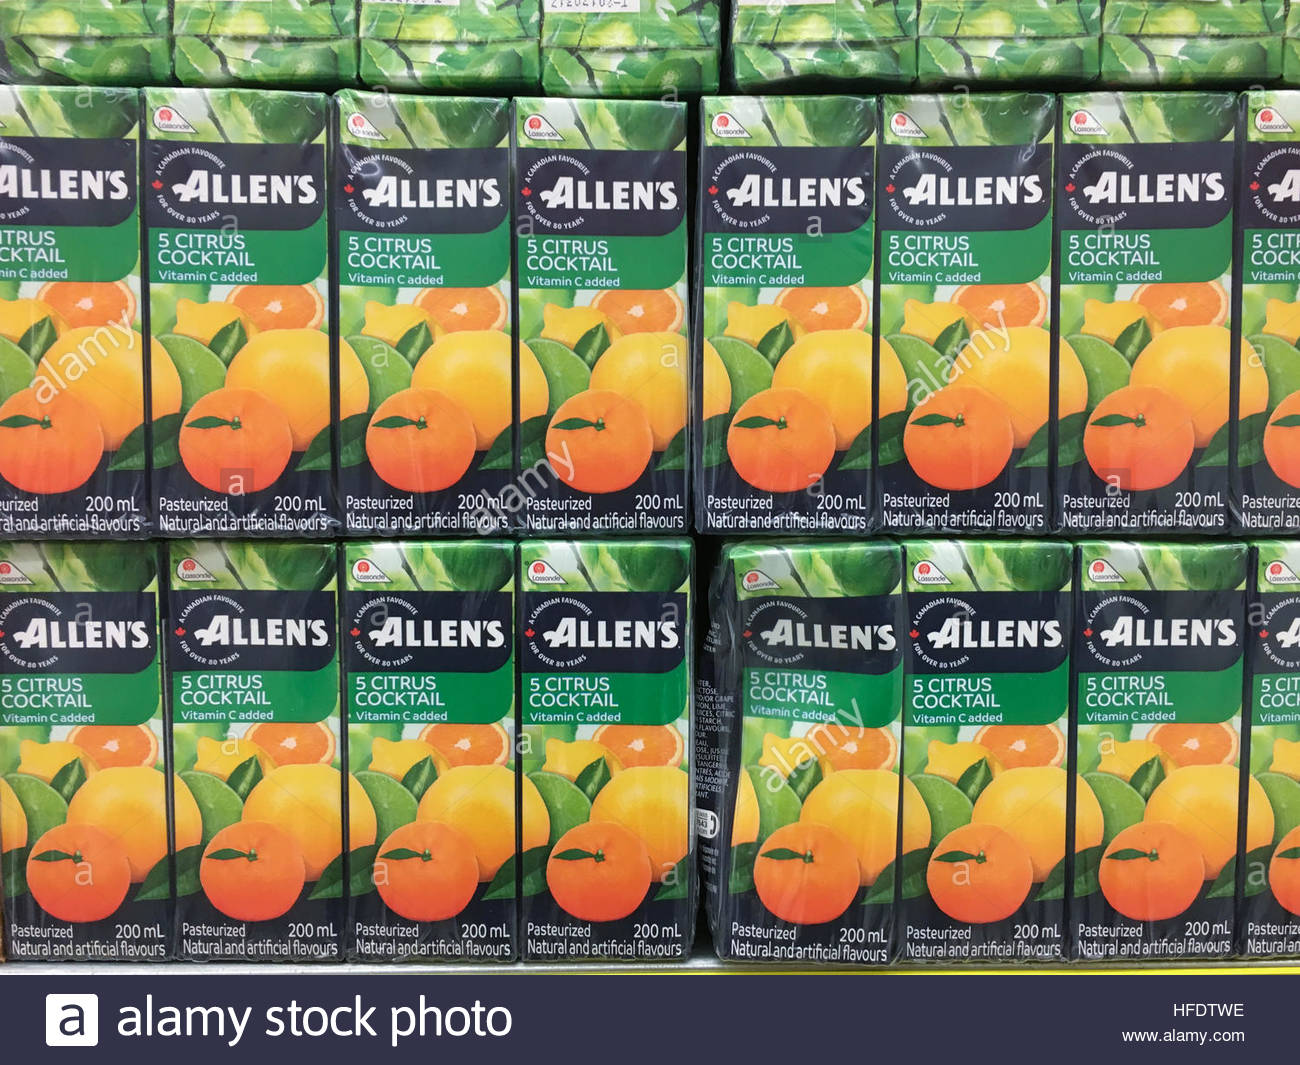 Allen's 5 Citrus Cocktail juice-boxes stacked on a supermarket shelf. Lassonde Industries Inc. is a Canadian - Stock Image